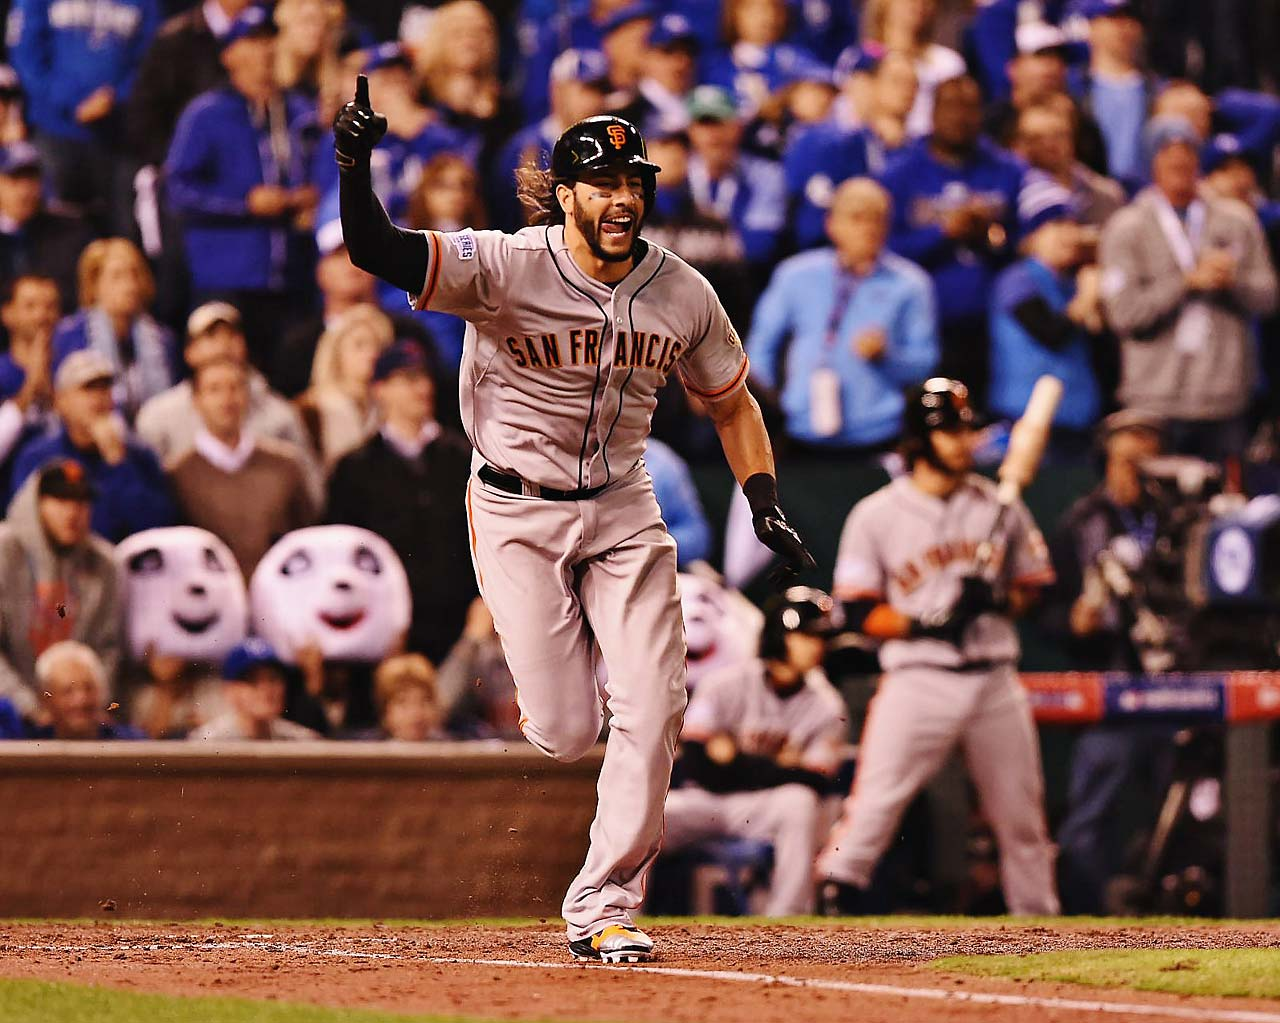 Michael Morse reacts after hitting a run-scoring single in the fourth inning to give the Giants their 3-2 lead.